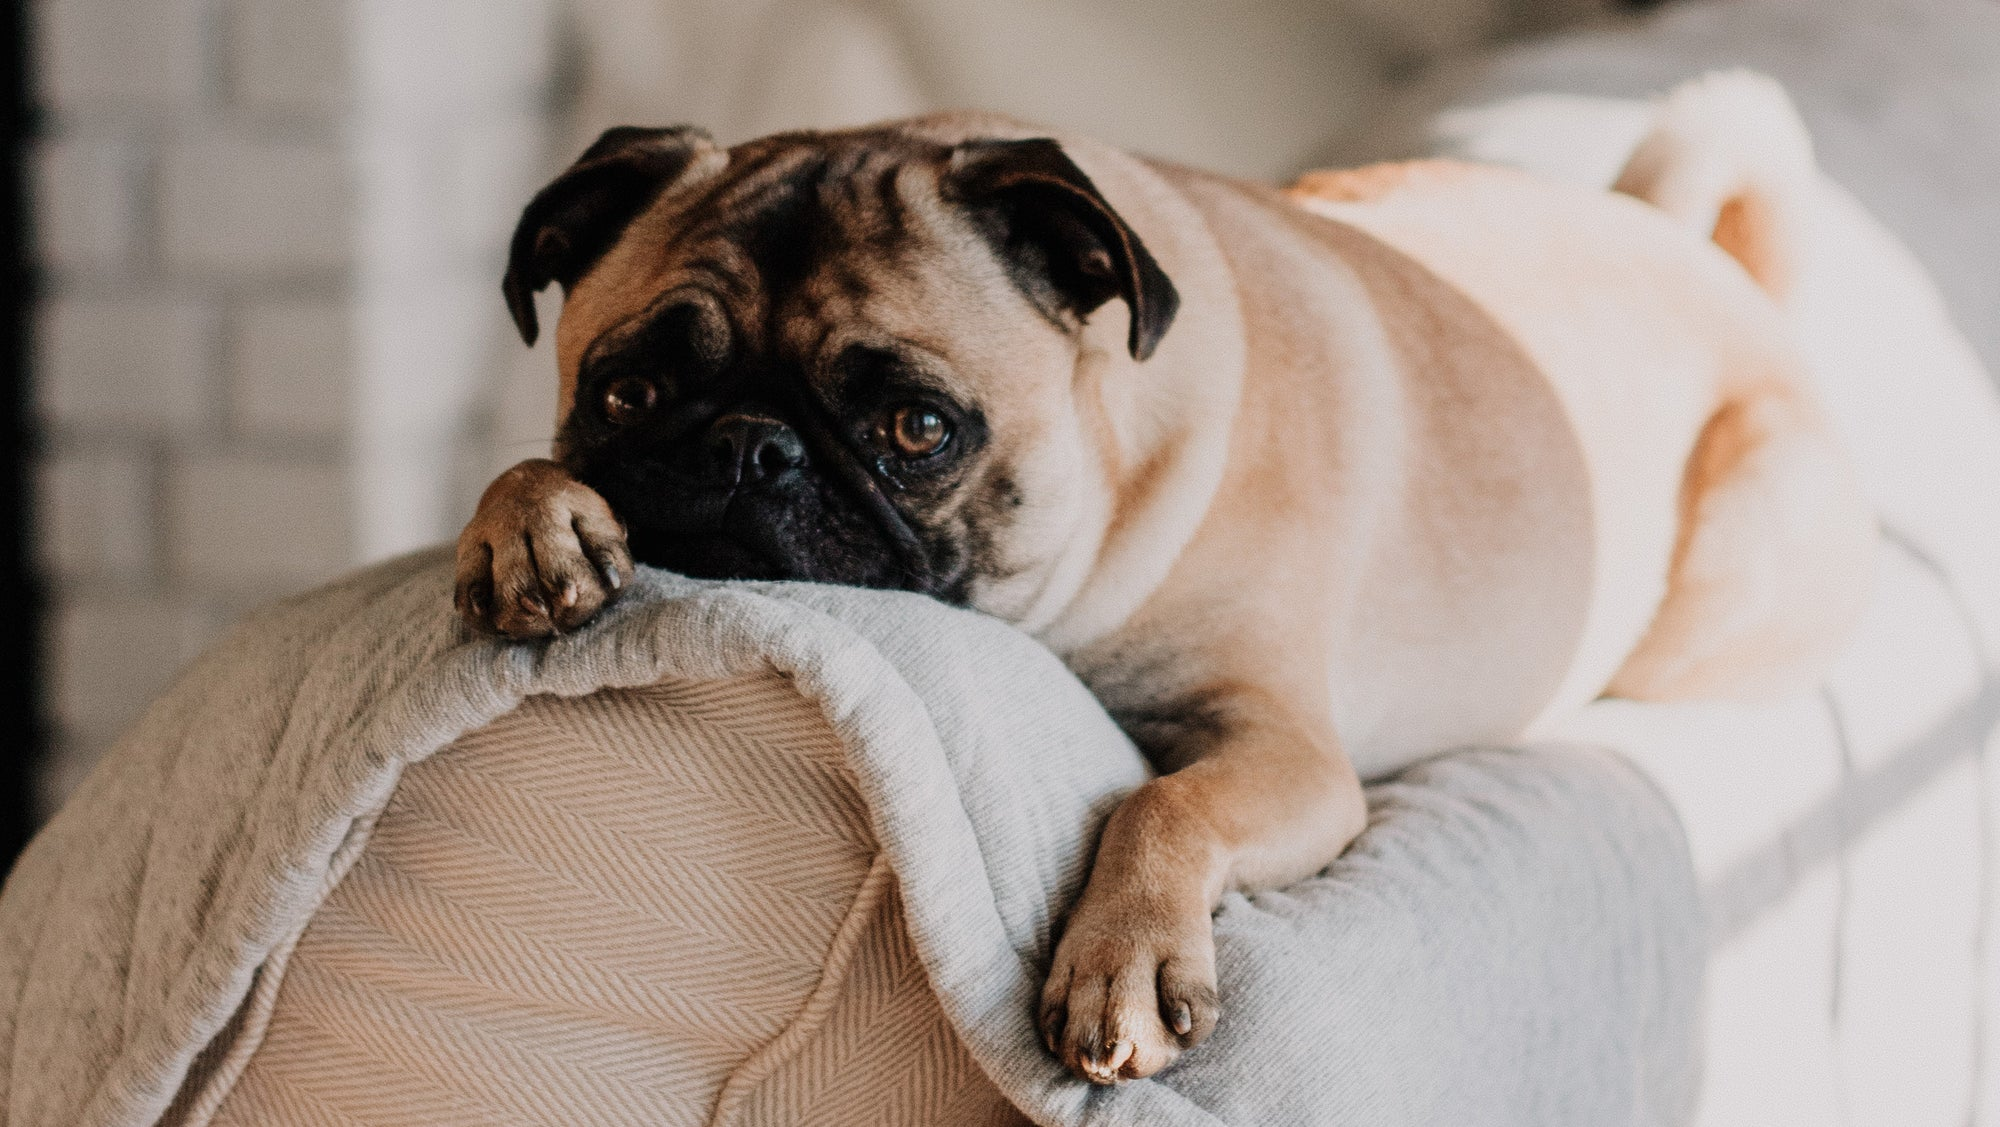 5 Simple Ways to Calm Your Anxious Dog